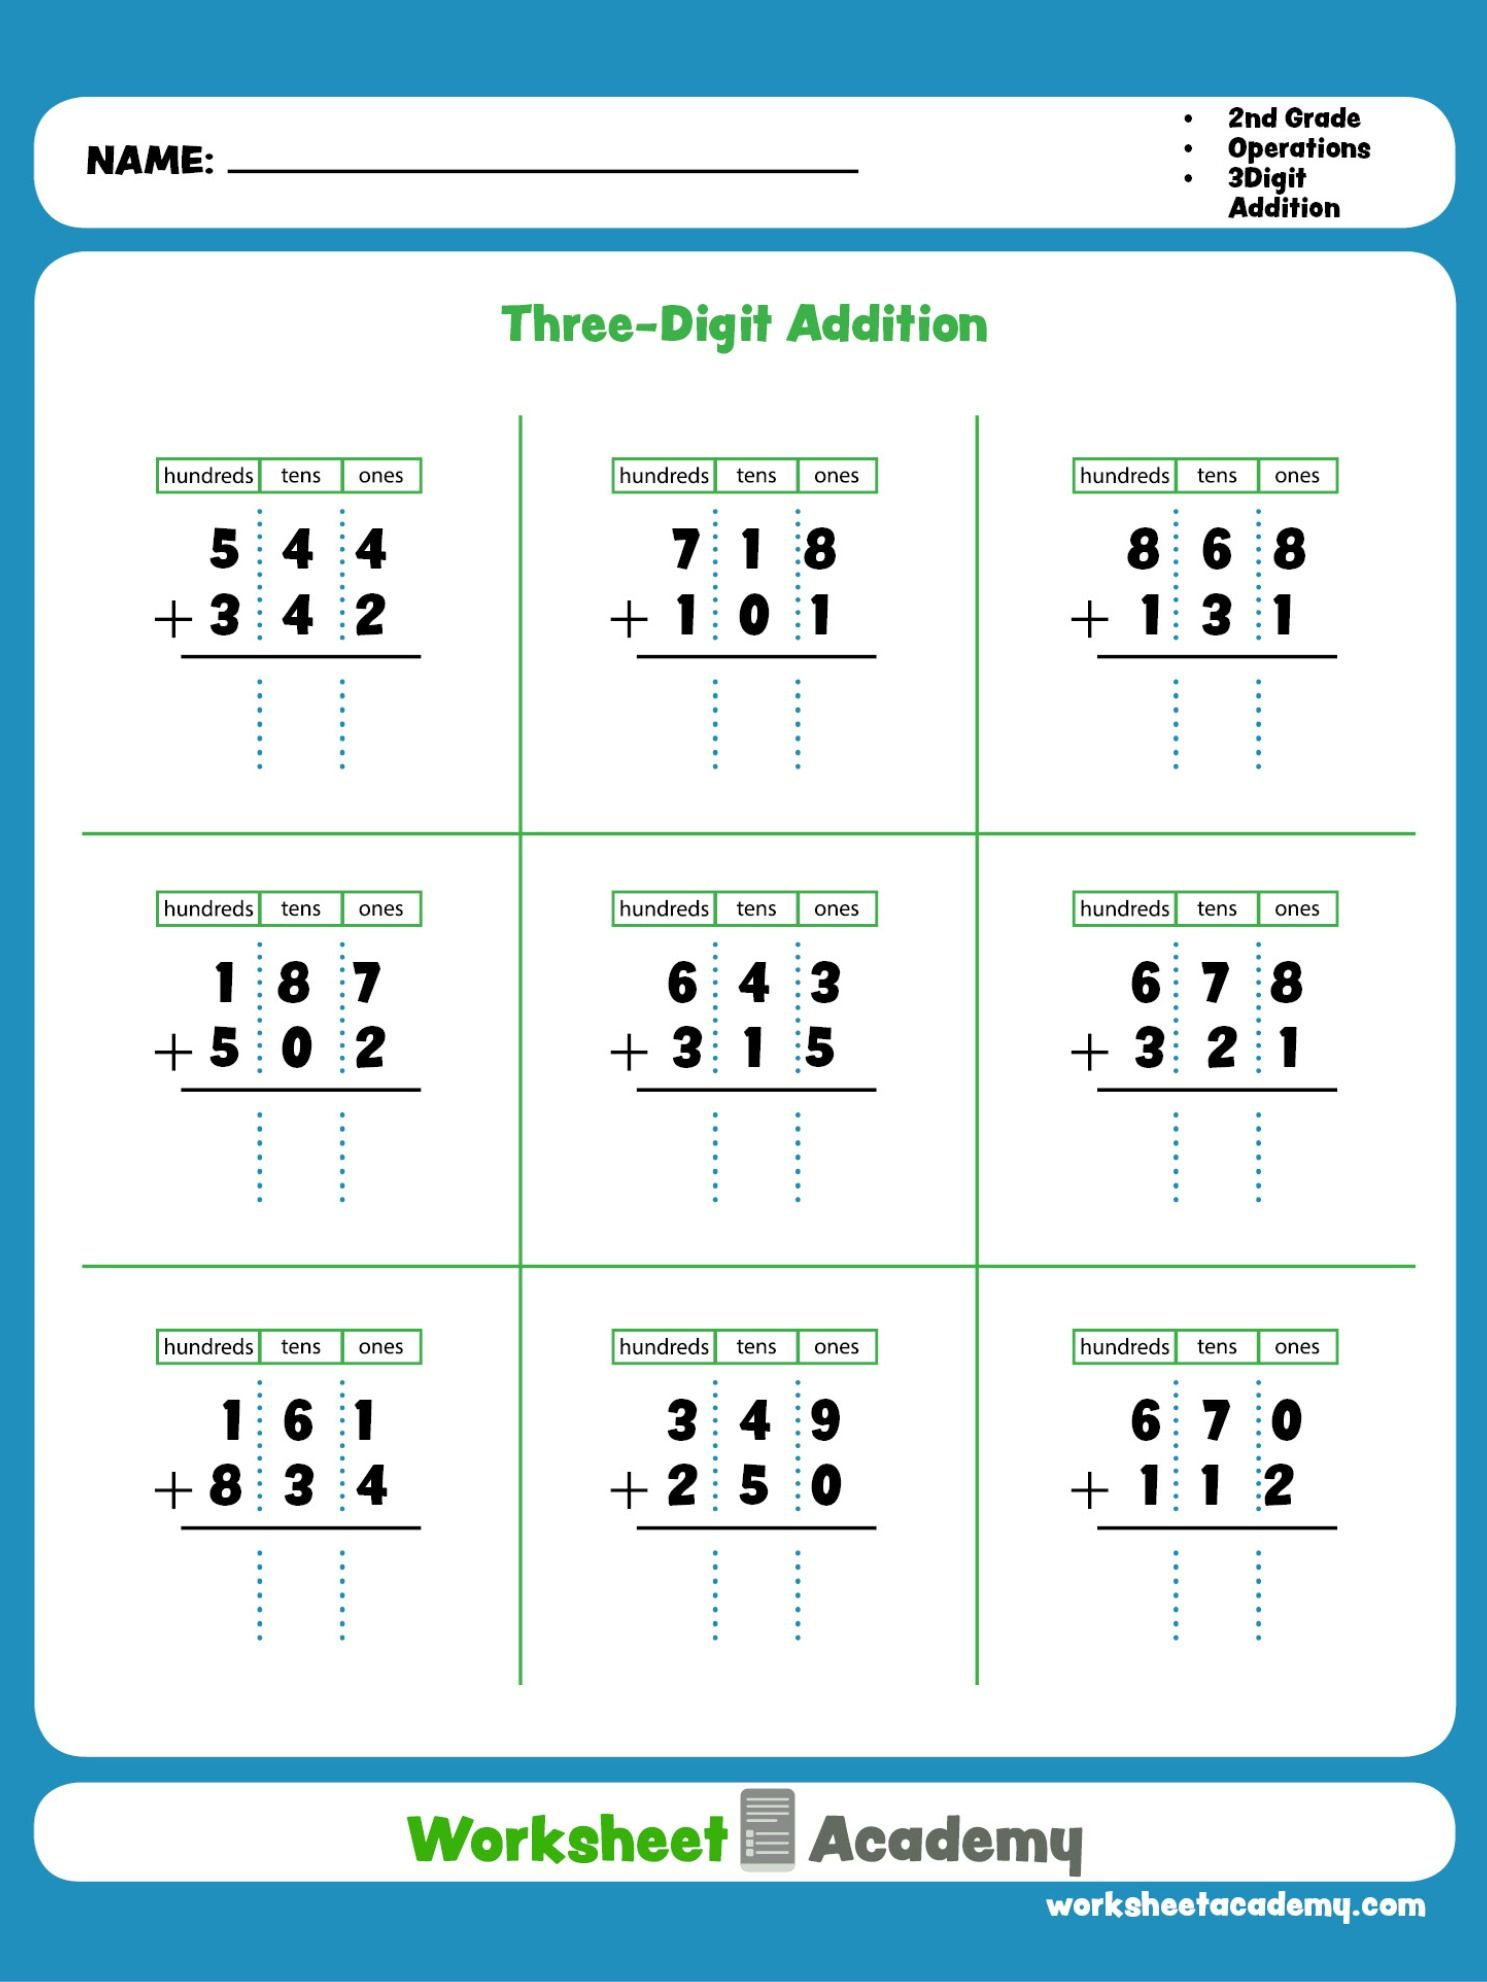 A Great Math Worksheet To Help Your Student Master Three